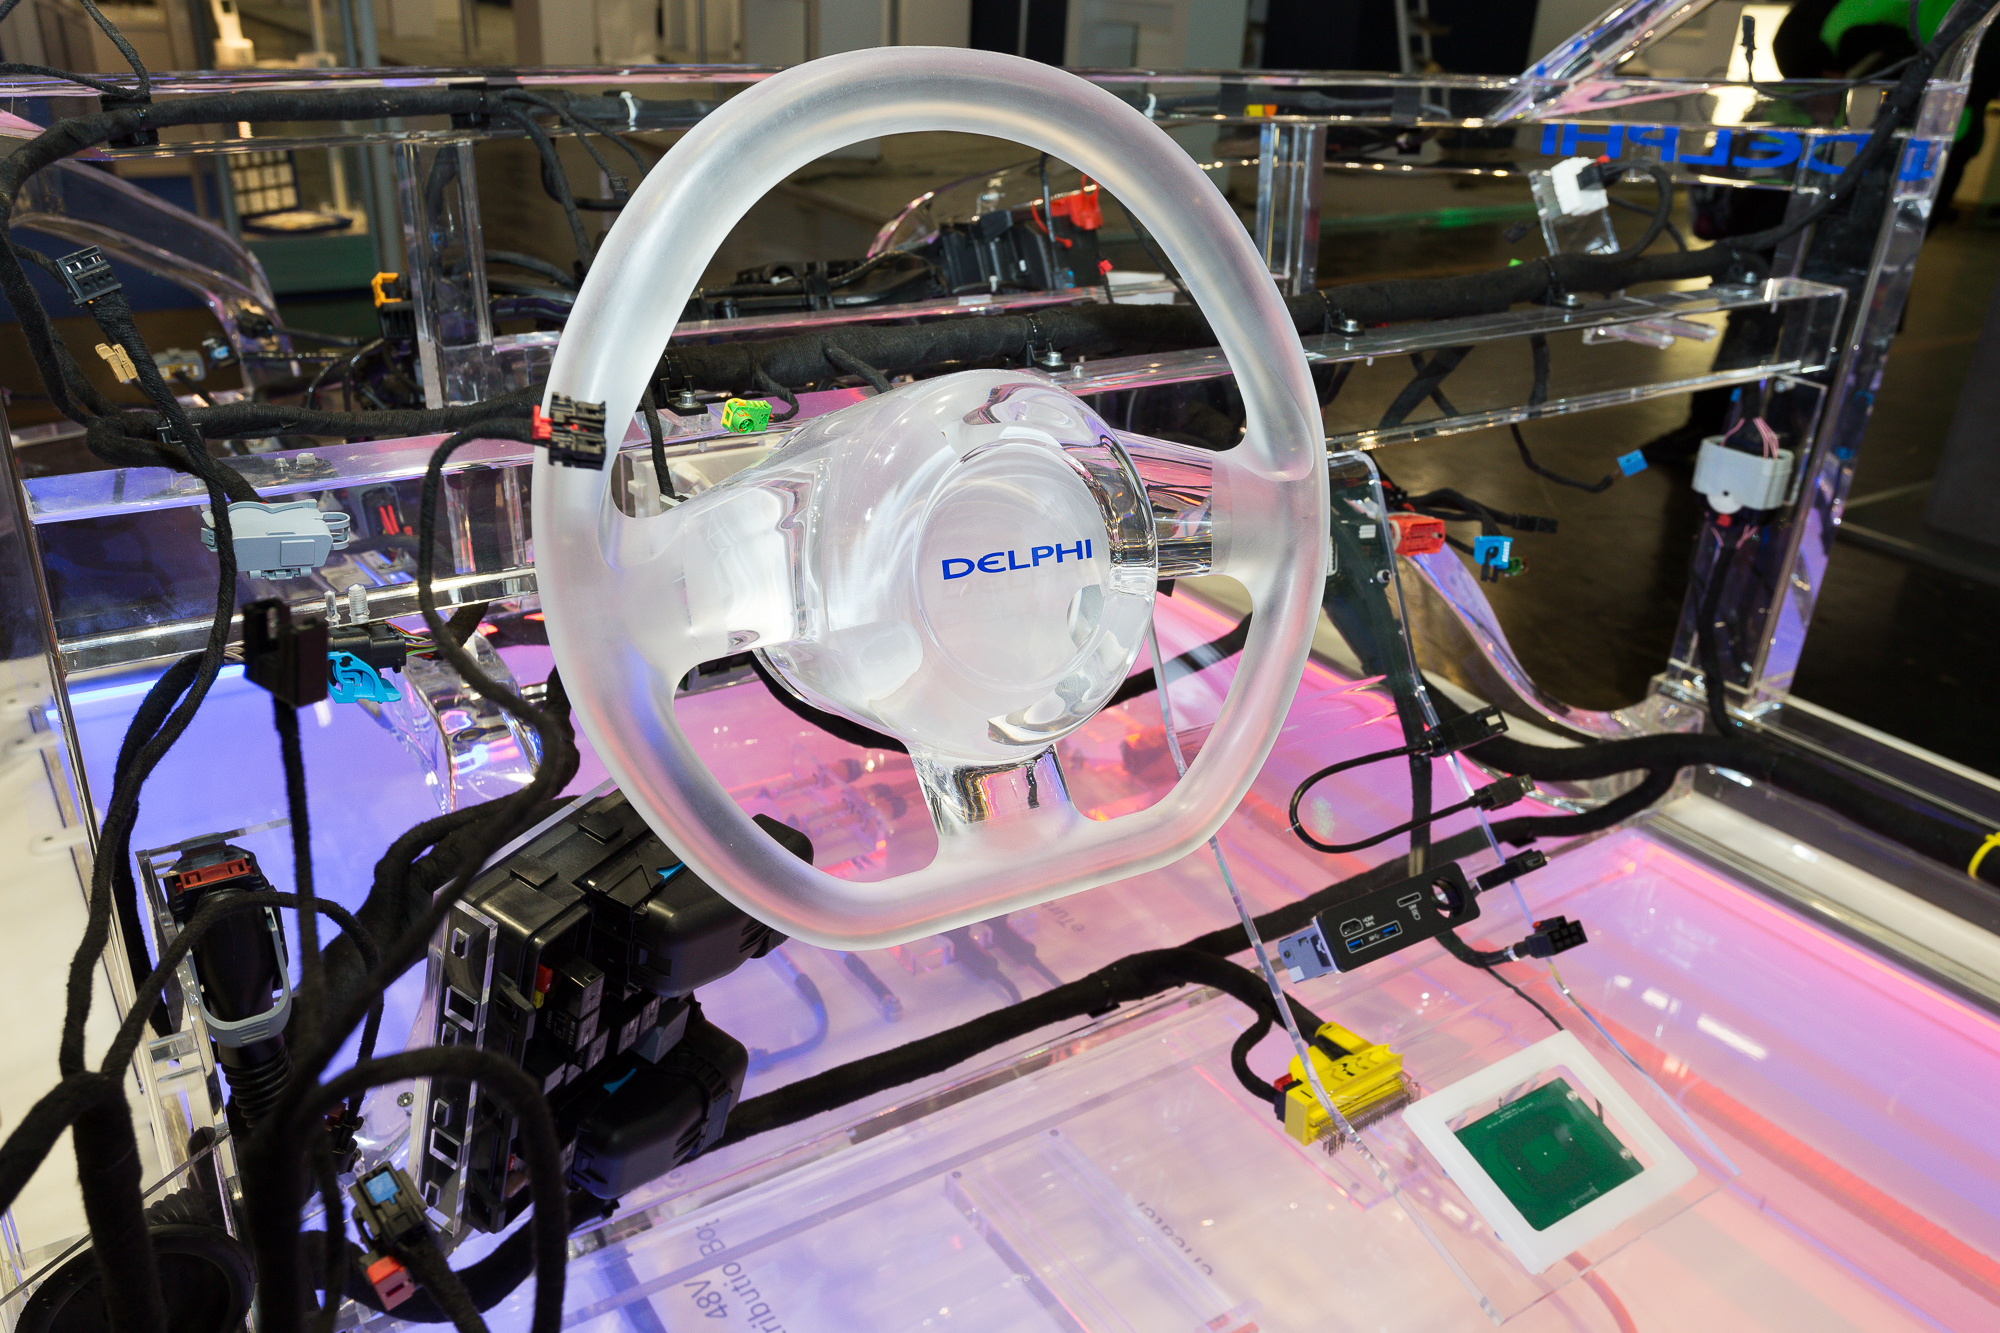 Copy of Delphi electric car system manufactured PCBA